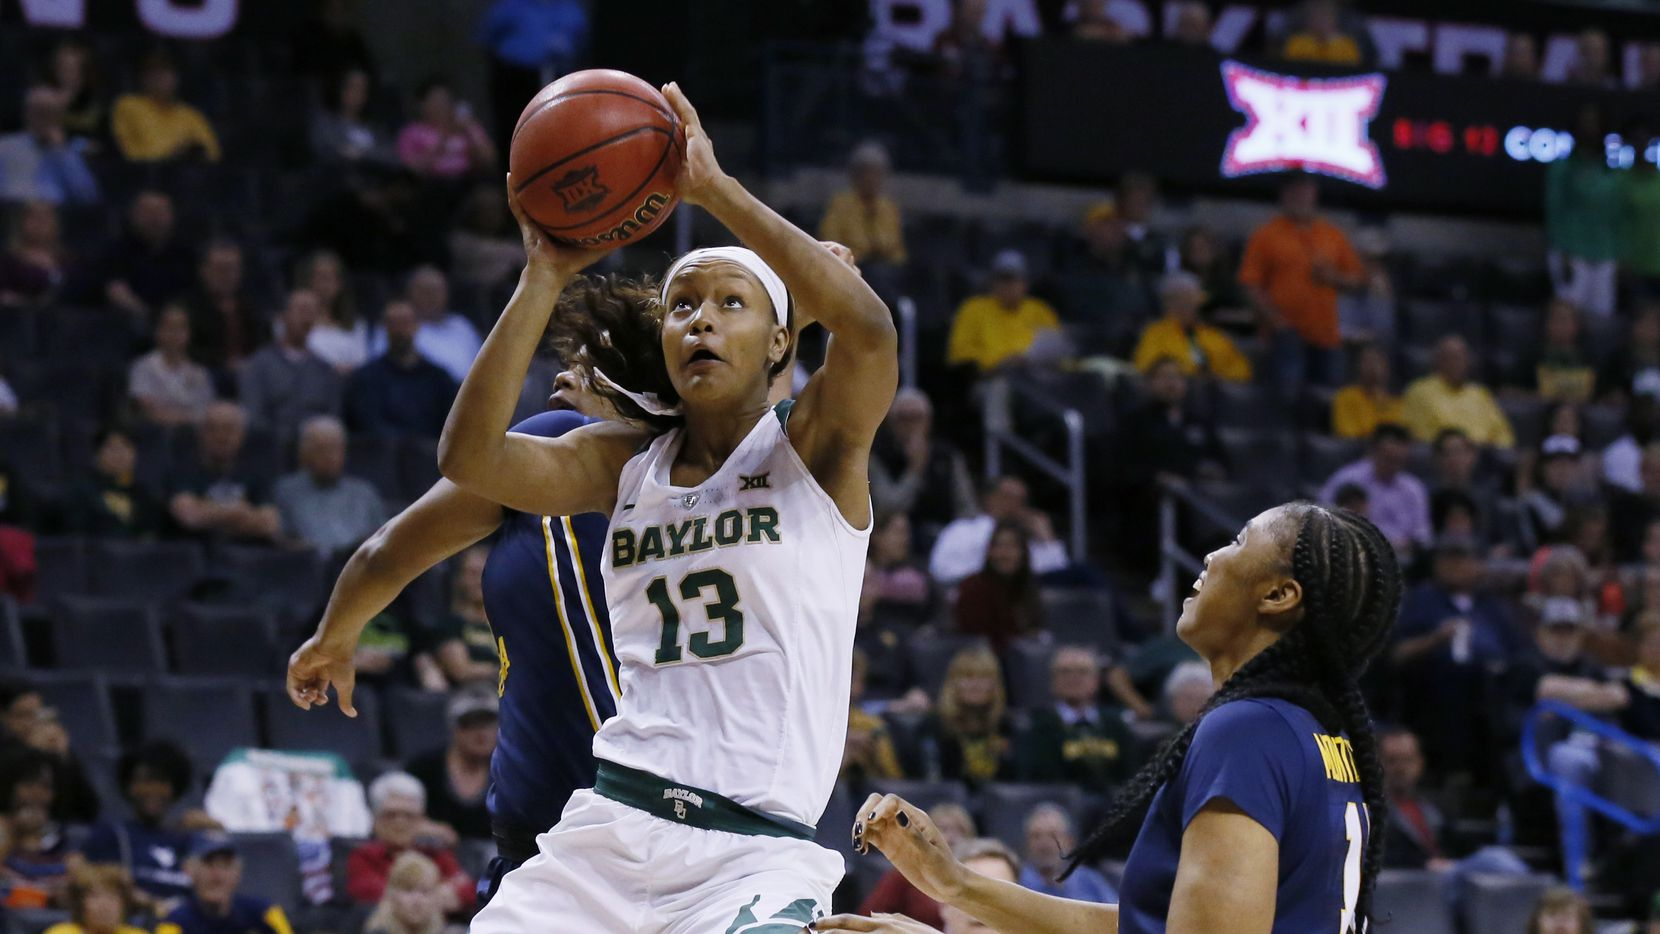 Baylor forward Nina Davis (13) shoots between West Virginia forward Teana Muldrow, left, and center Lanay Montgomery, right, in the first half of an NCAA college basketball championship game at the Big 12 Conference tournament in Oklahoma City, Monday, March 6, 2017. (AP Photo/Sue Ogrocki)